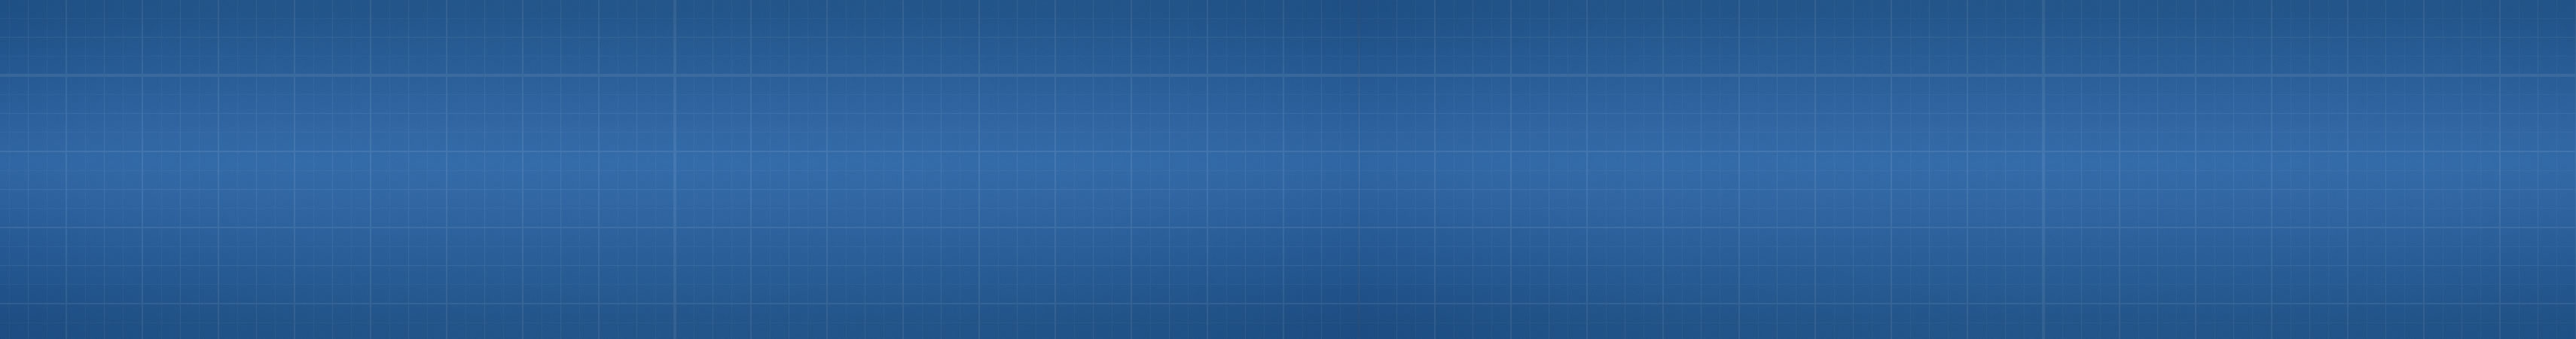 blueprint_bg2